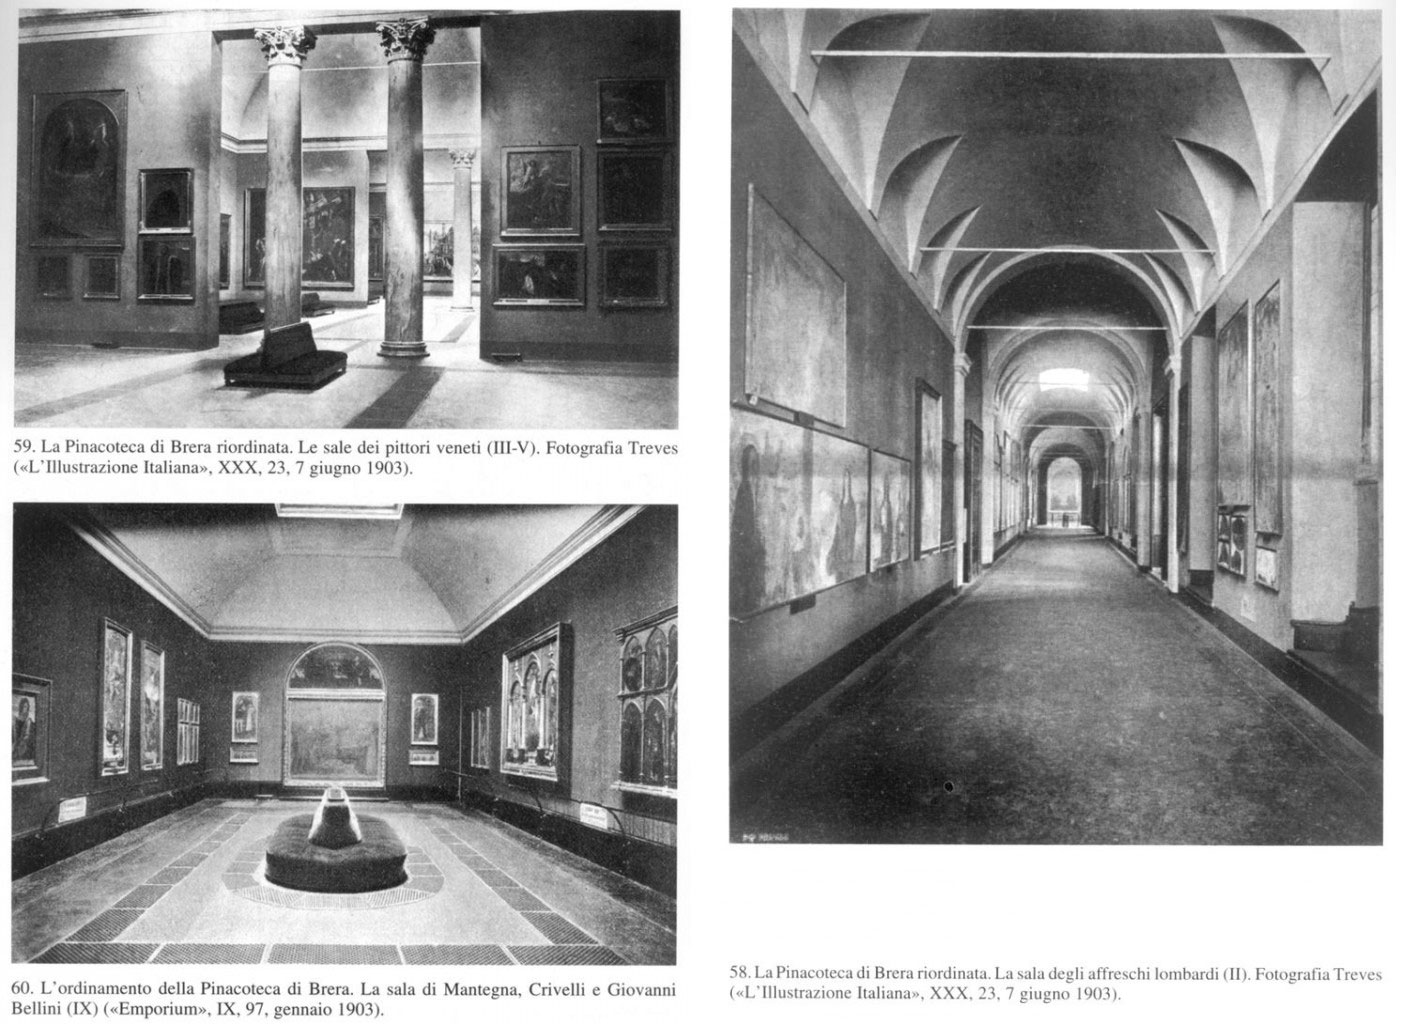 Brera renovated: above left the rooms housing work of the Venetian school, below the Mantegna, Crivelli and Giovanni Bellini room. On the right the Lombard frescoes room on 7 June 1903